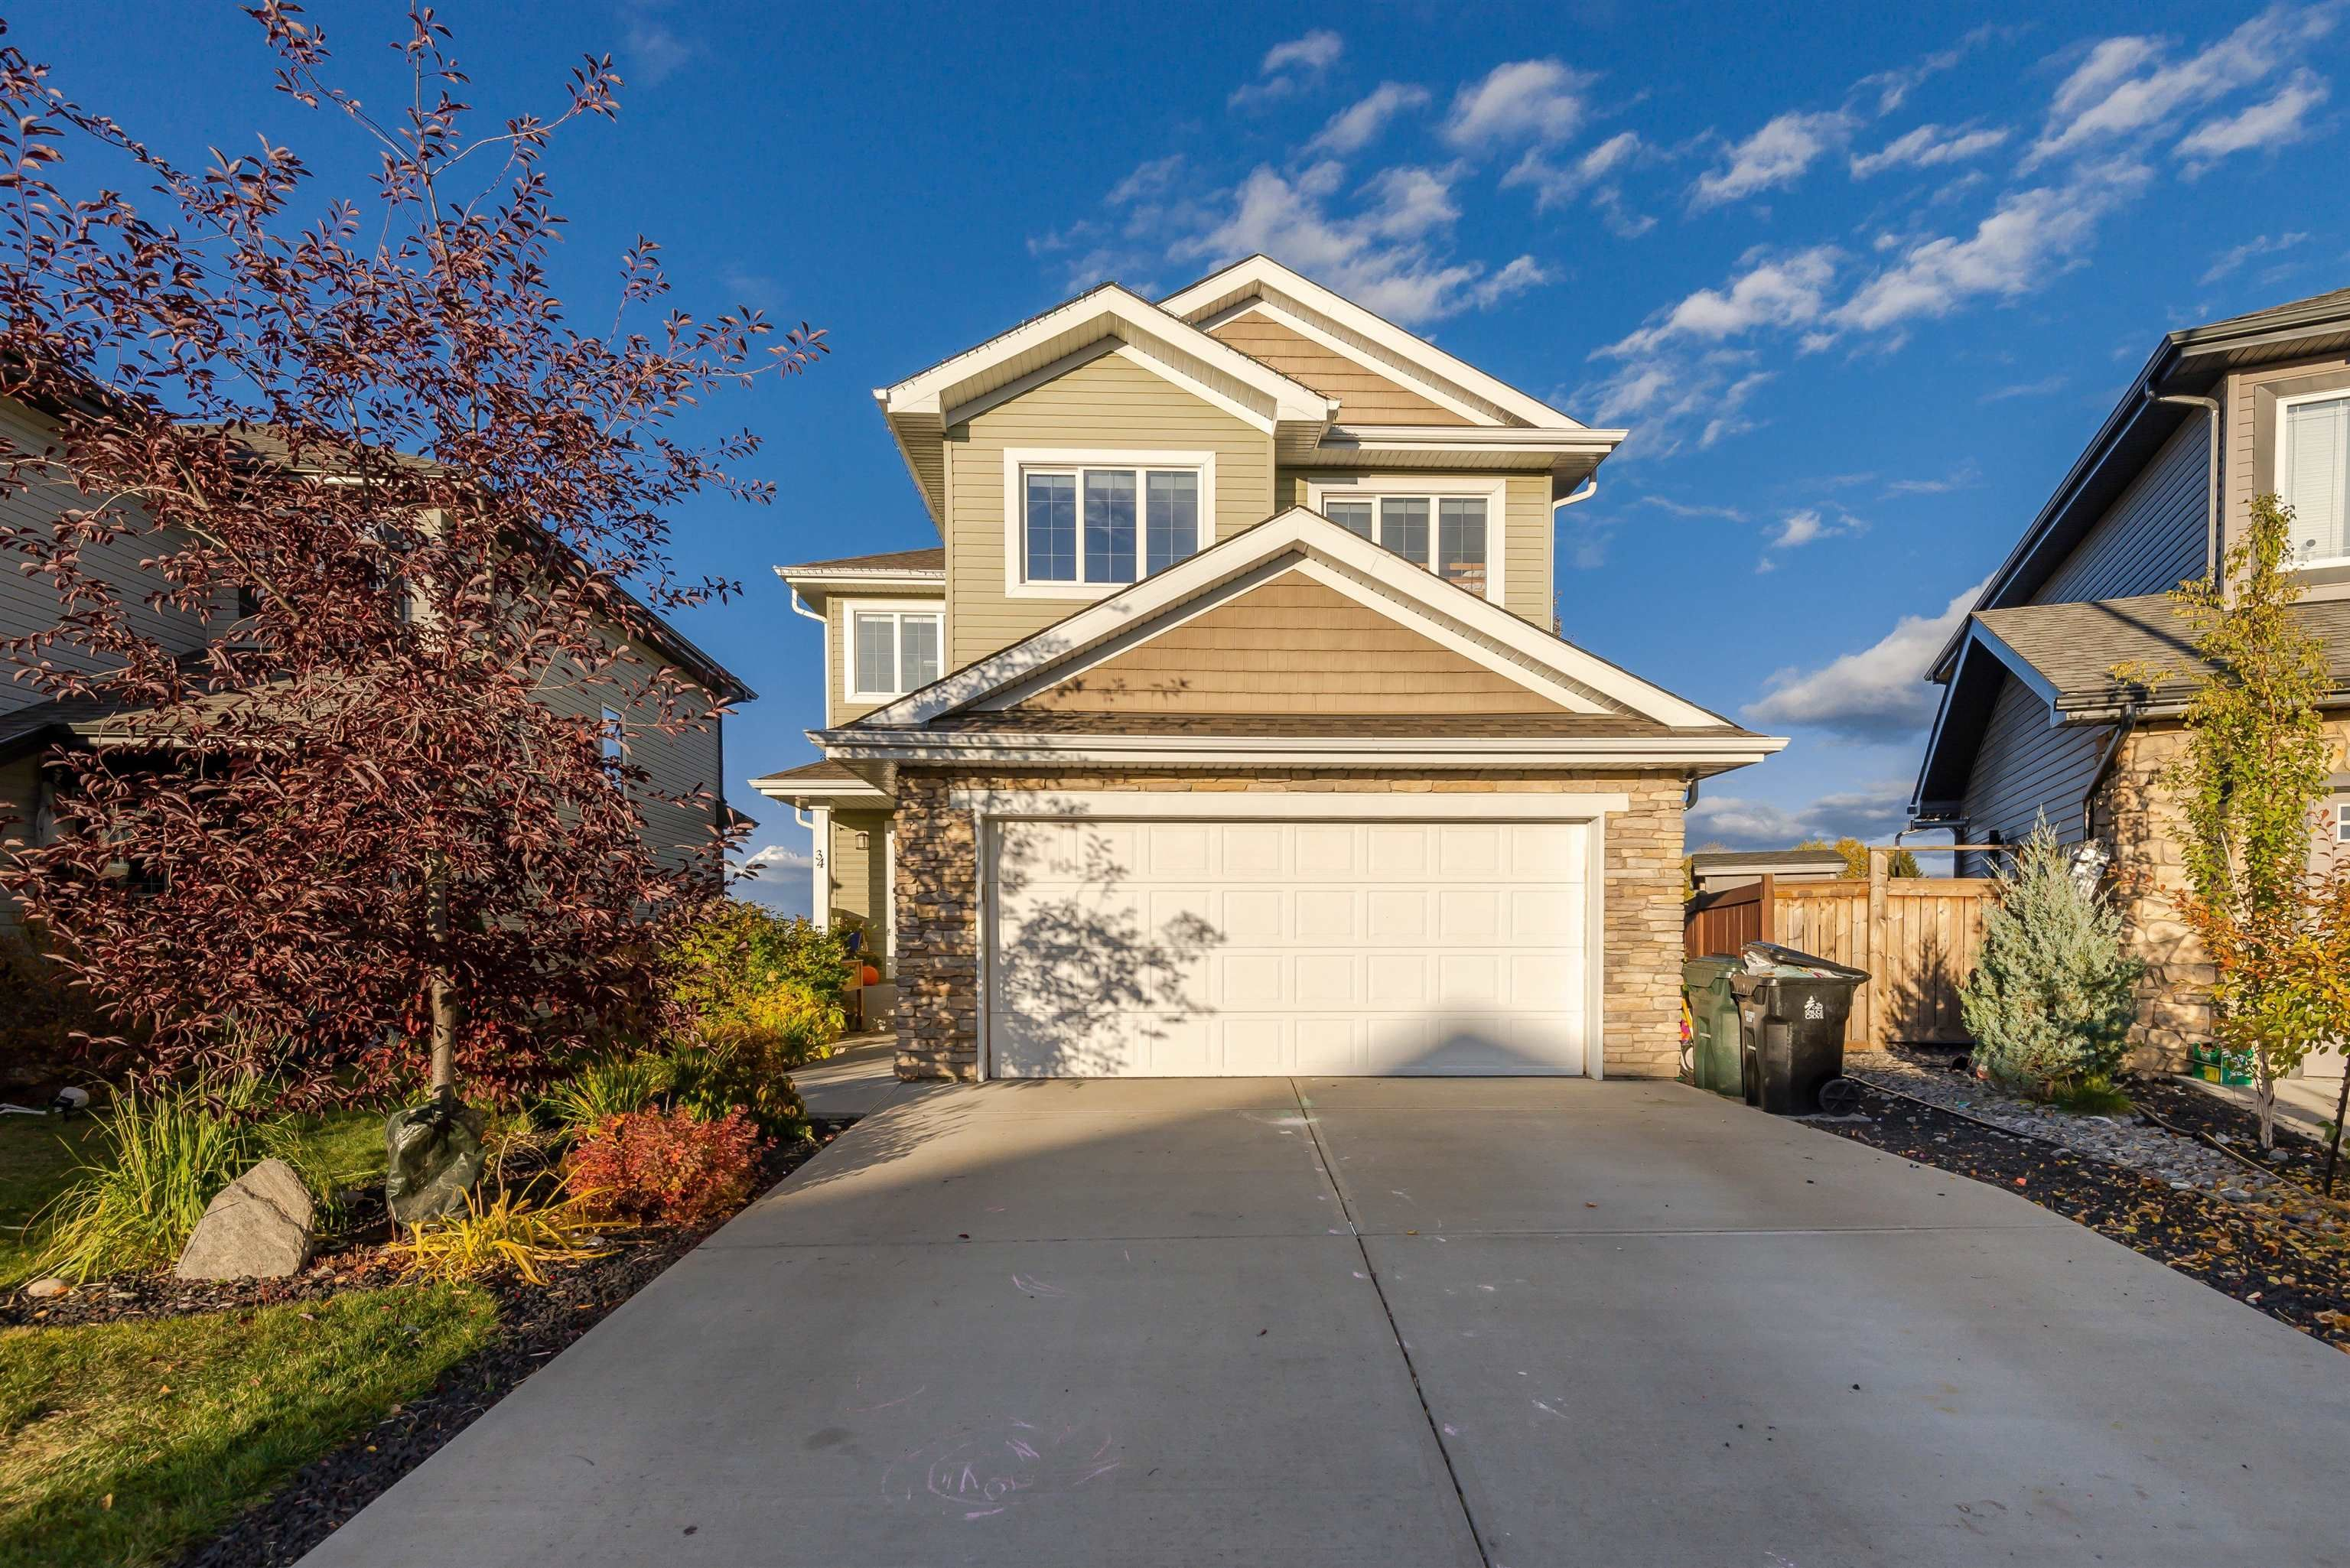 Main Photo: 34 Applewood Point: Spruce Grove House for sale : MLS®# E4266300